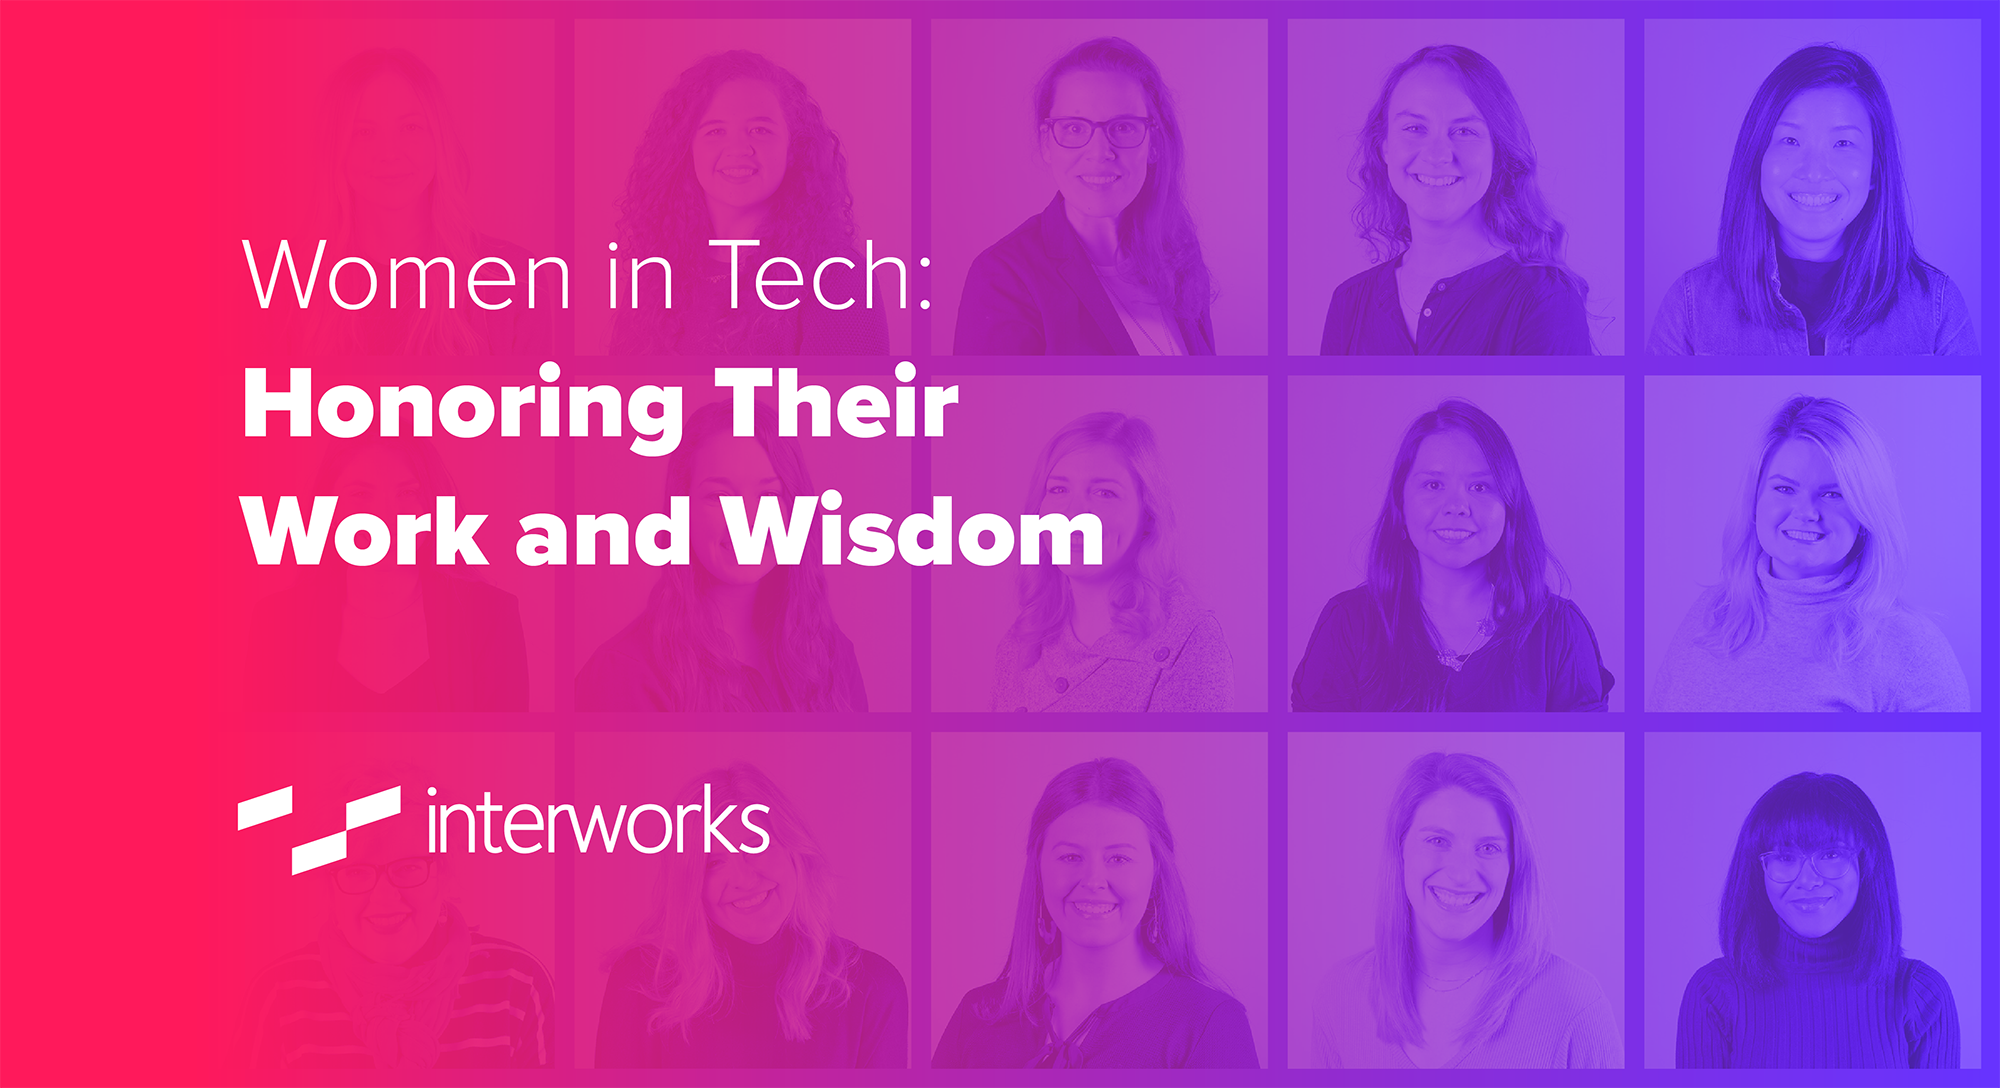 Women in Tech: Honoring Their Work and Wisdom